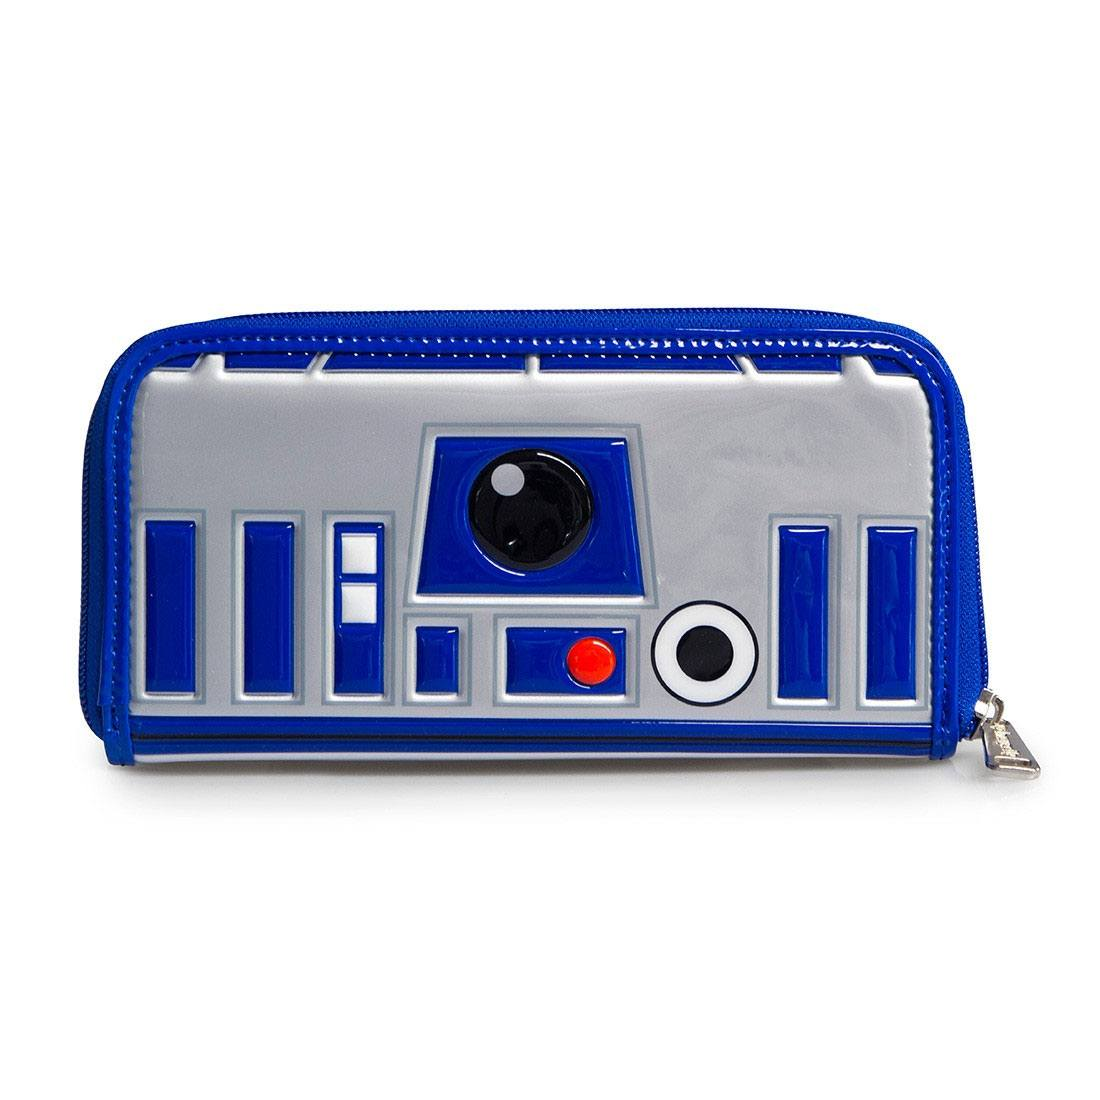 Star Wars by Loungefly Wallet R2-D2